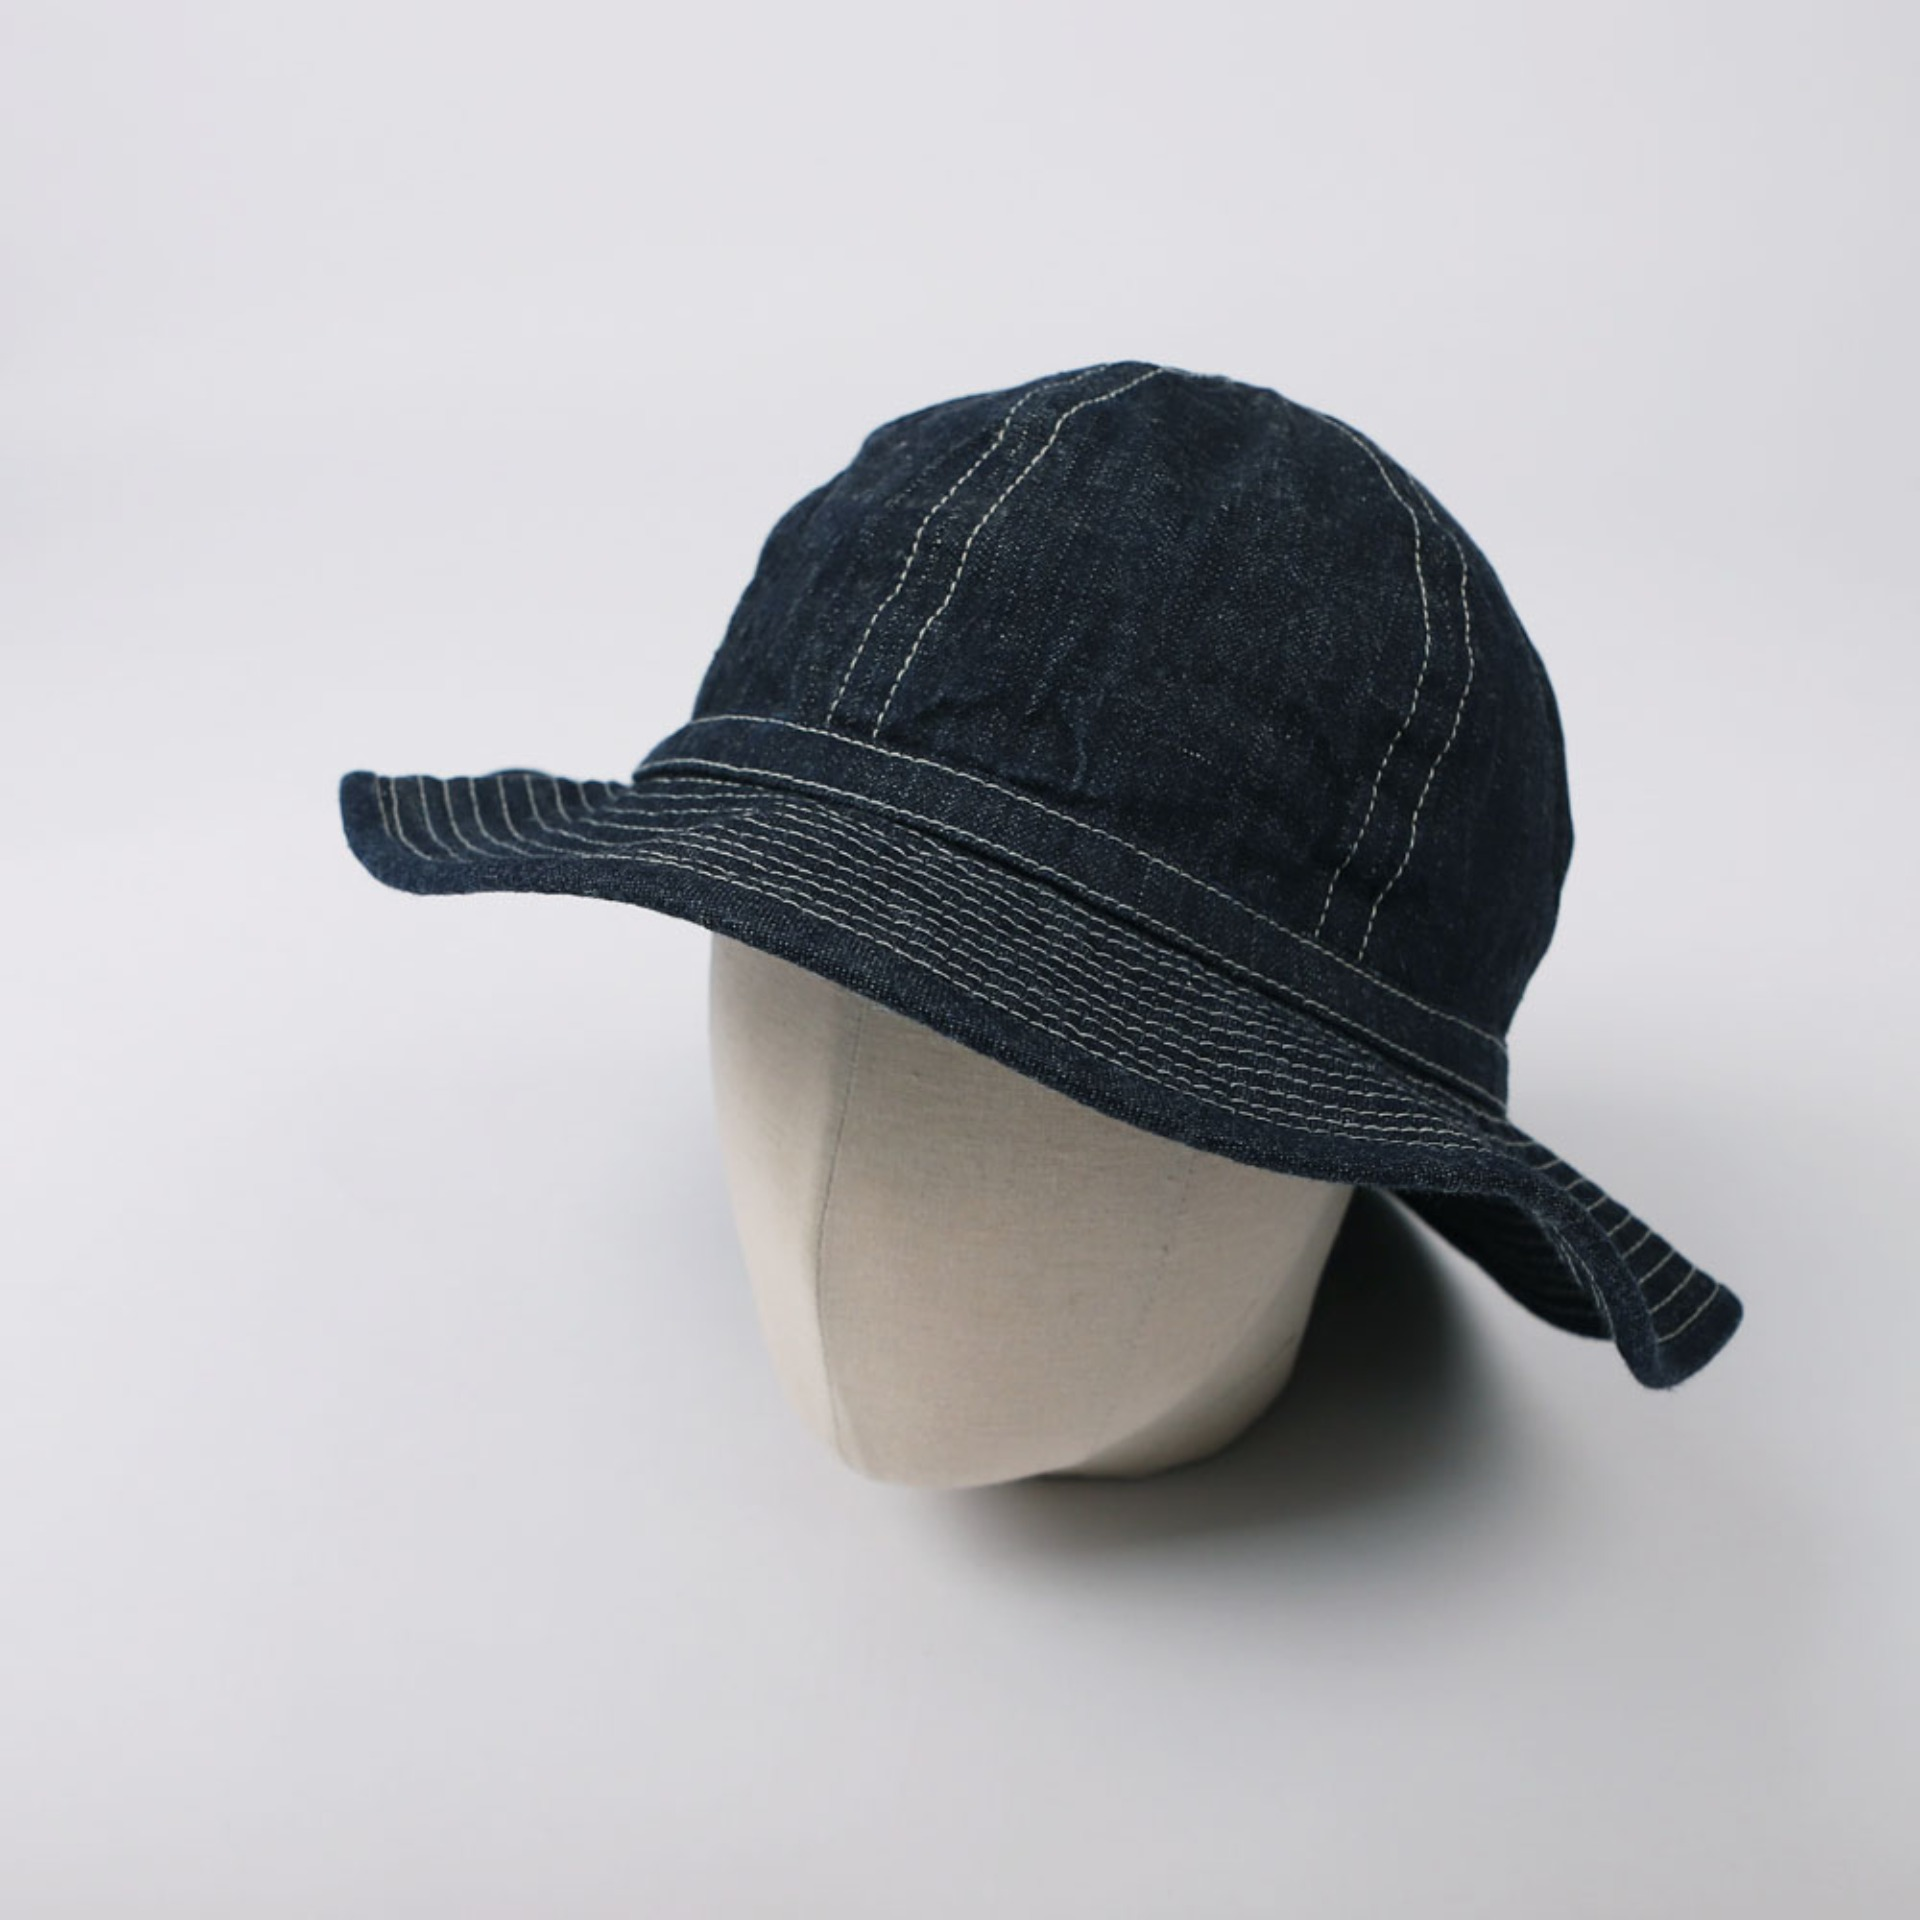 HAT, WORKING,DENIM (Indigo)